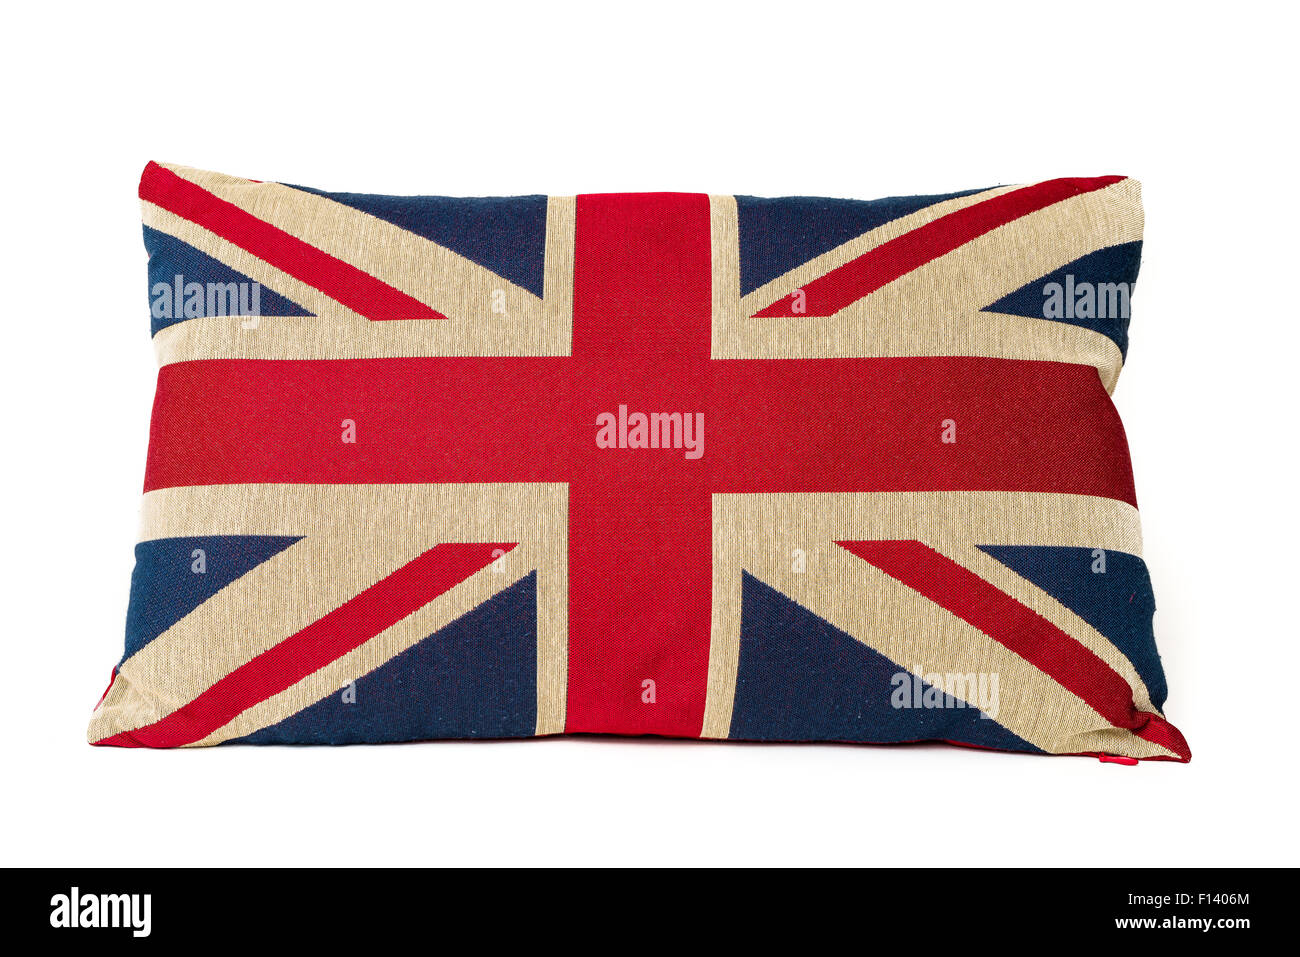 Closeup of union jack cushion pillow isolated on a white background. - Stock Image